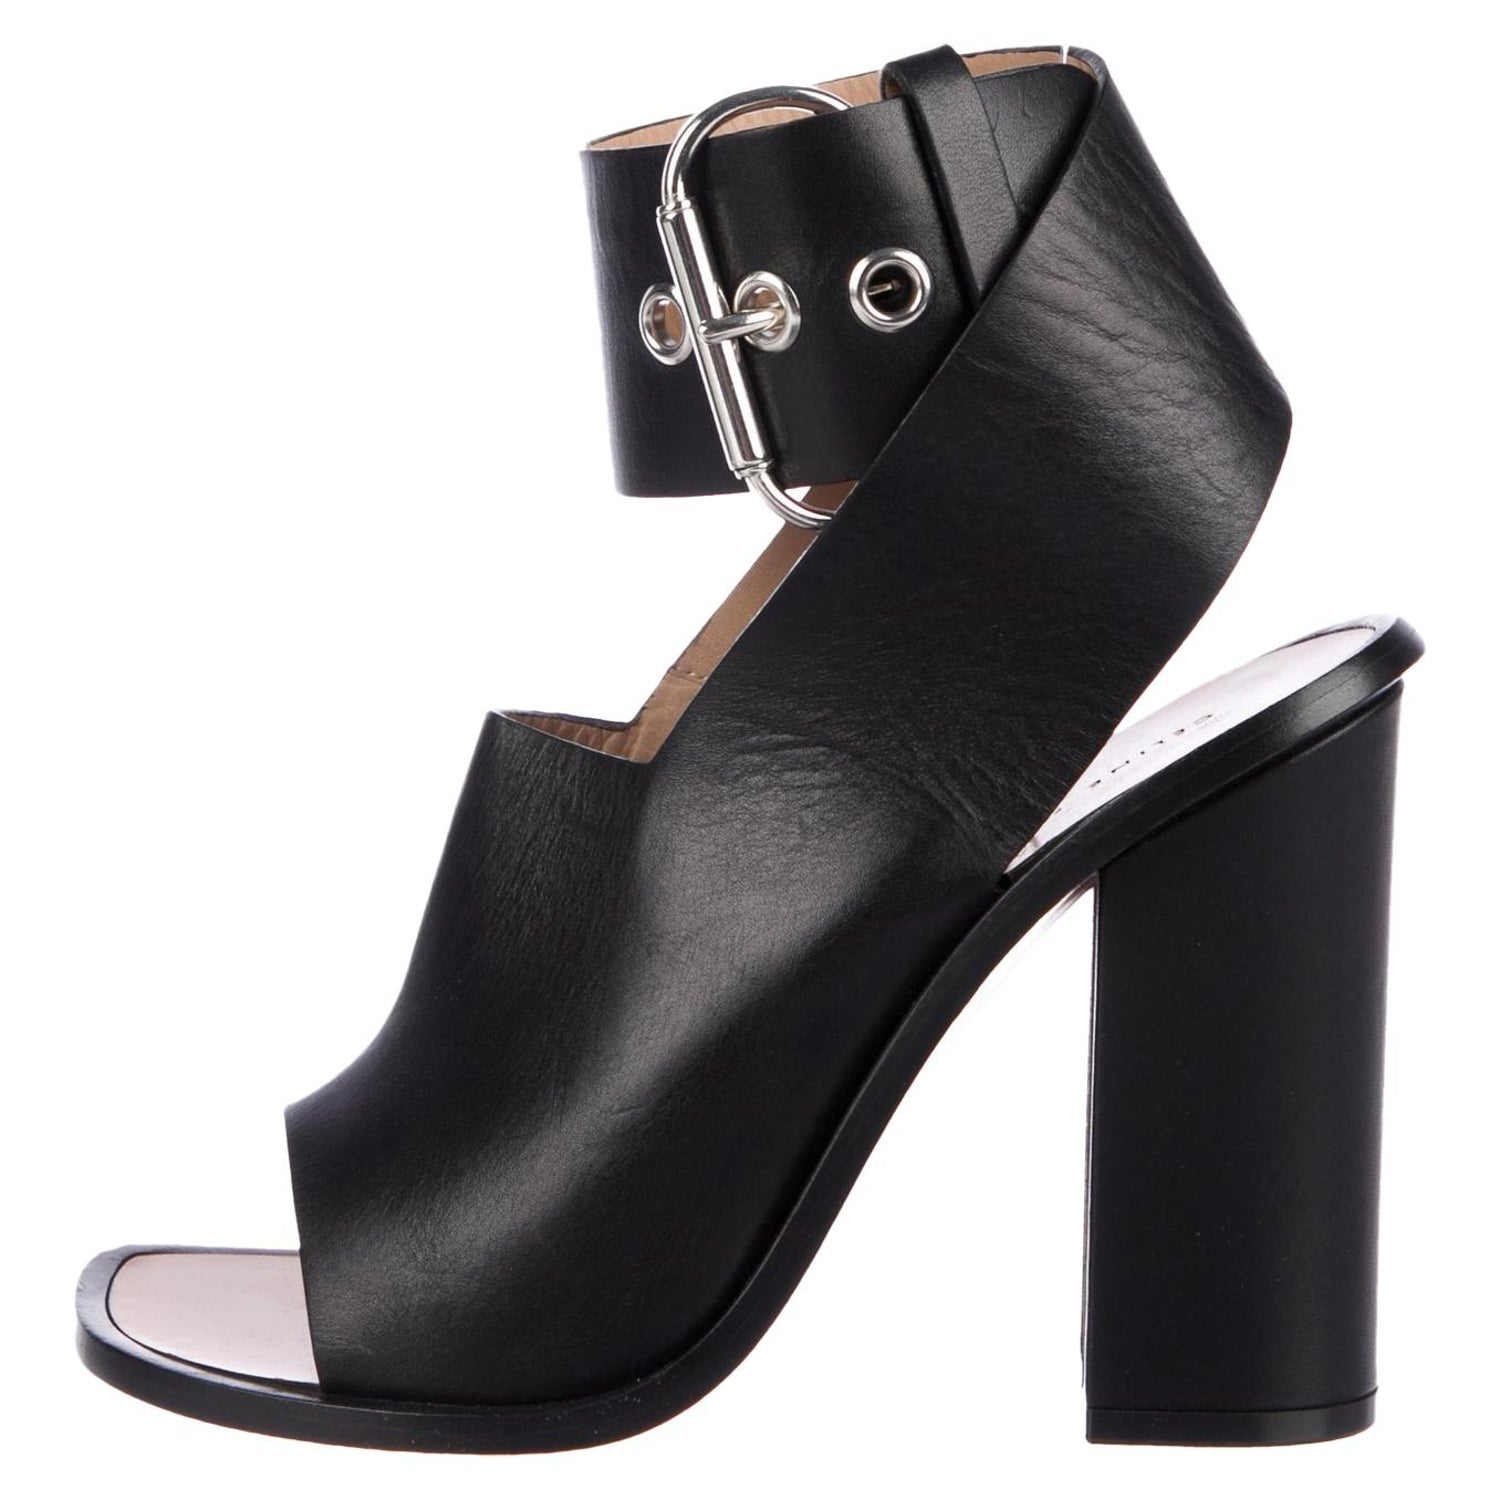 7e2f2c736 Celine Phoebe Philo NEW Black Leather Silver Ankle Buckle Sandals Chunky  Heels at 1stdibs